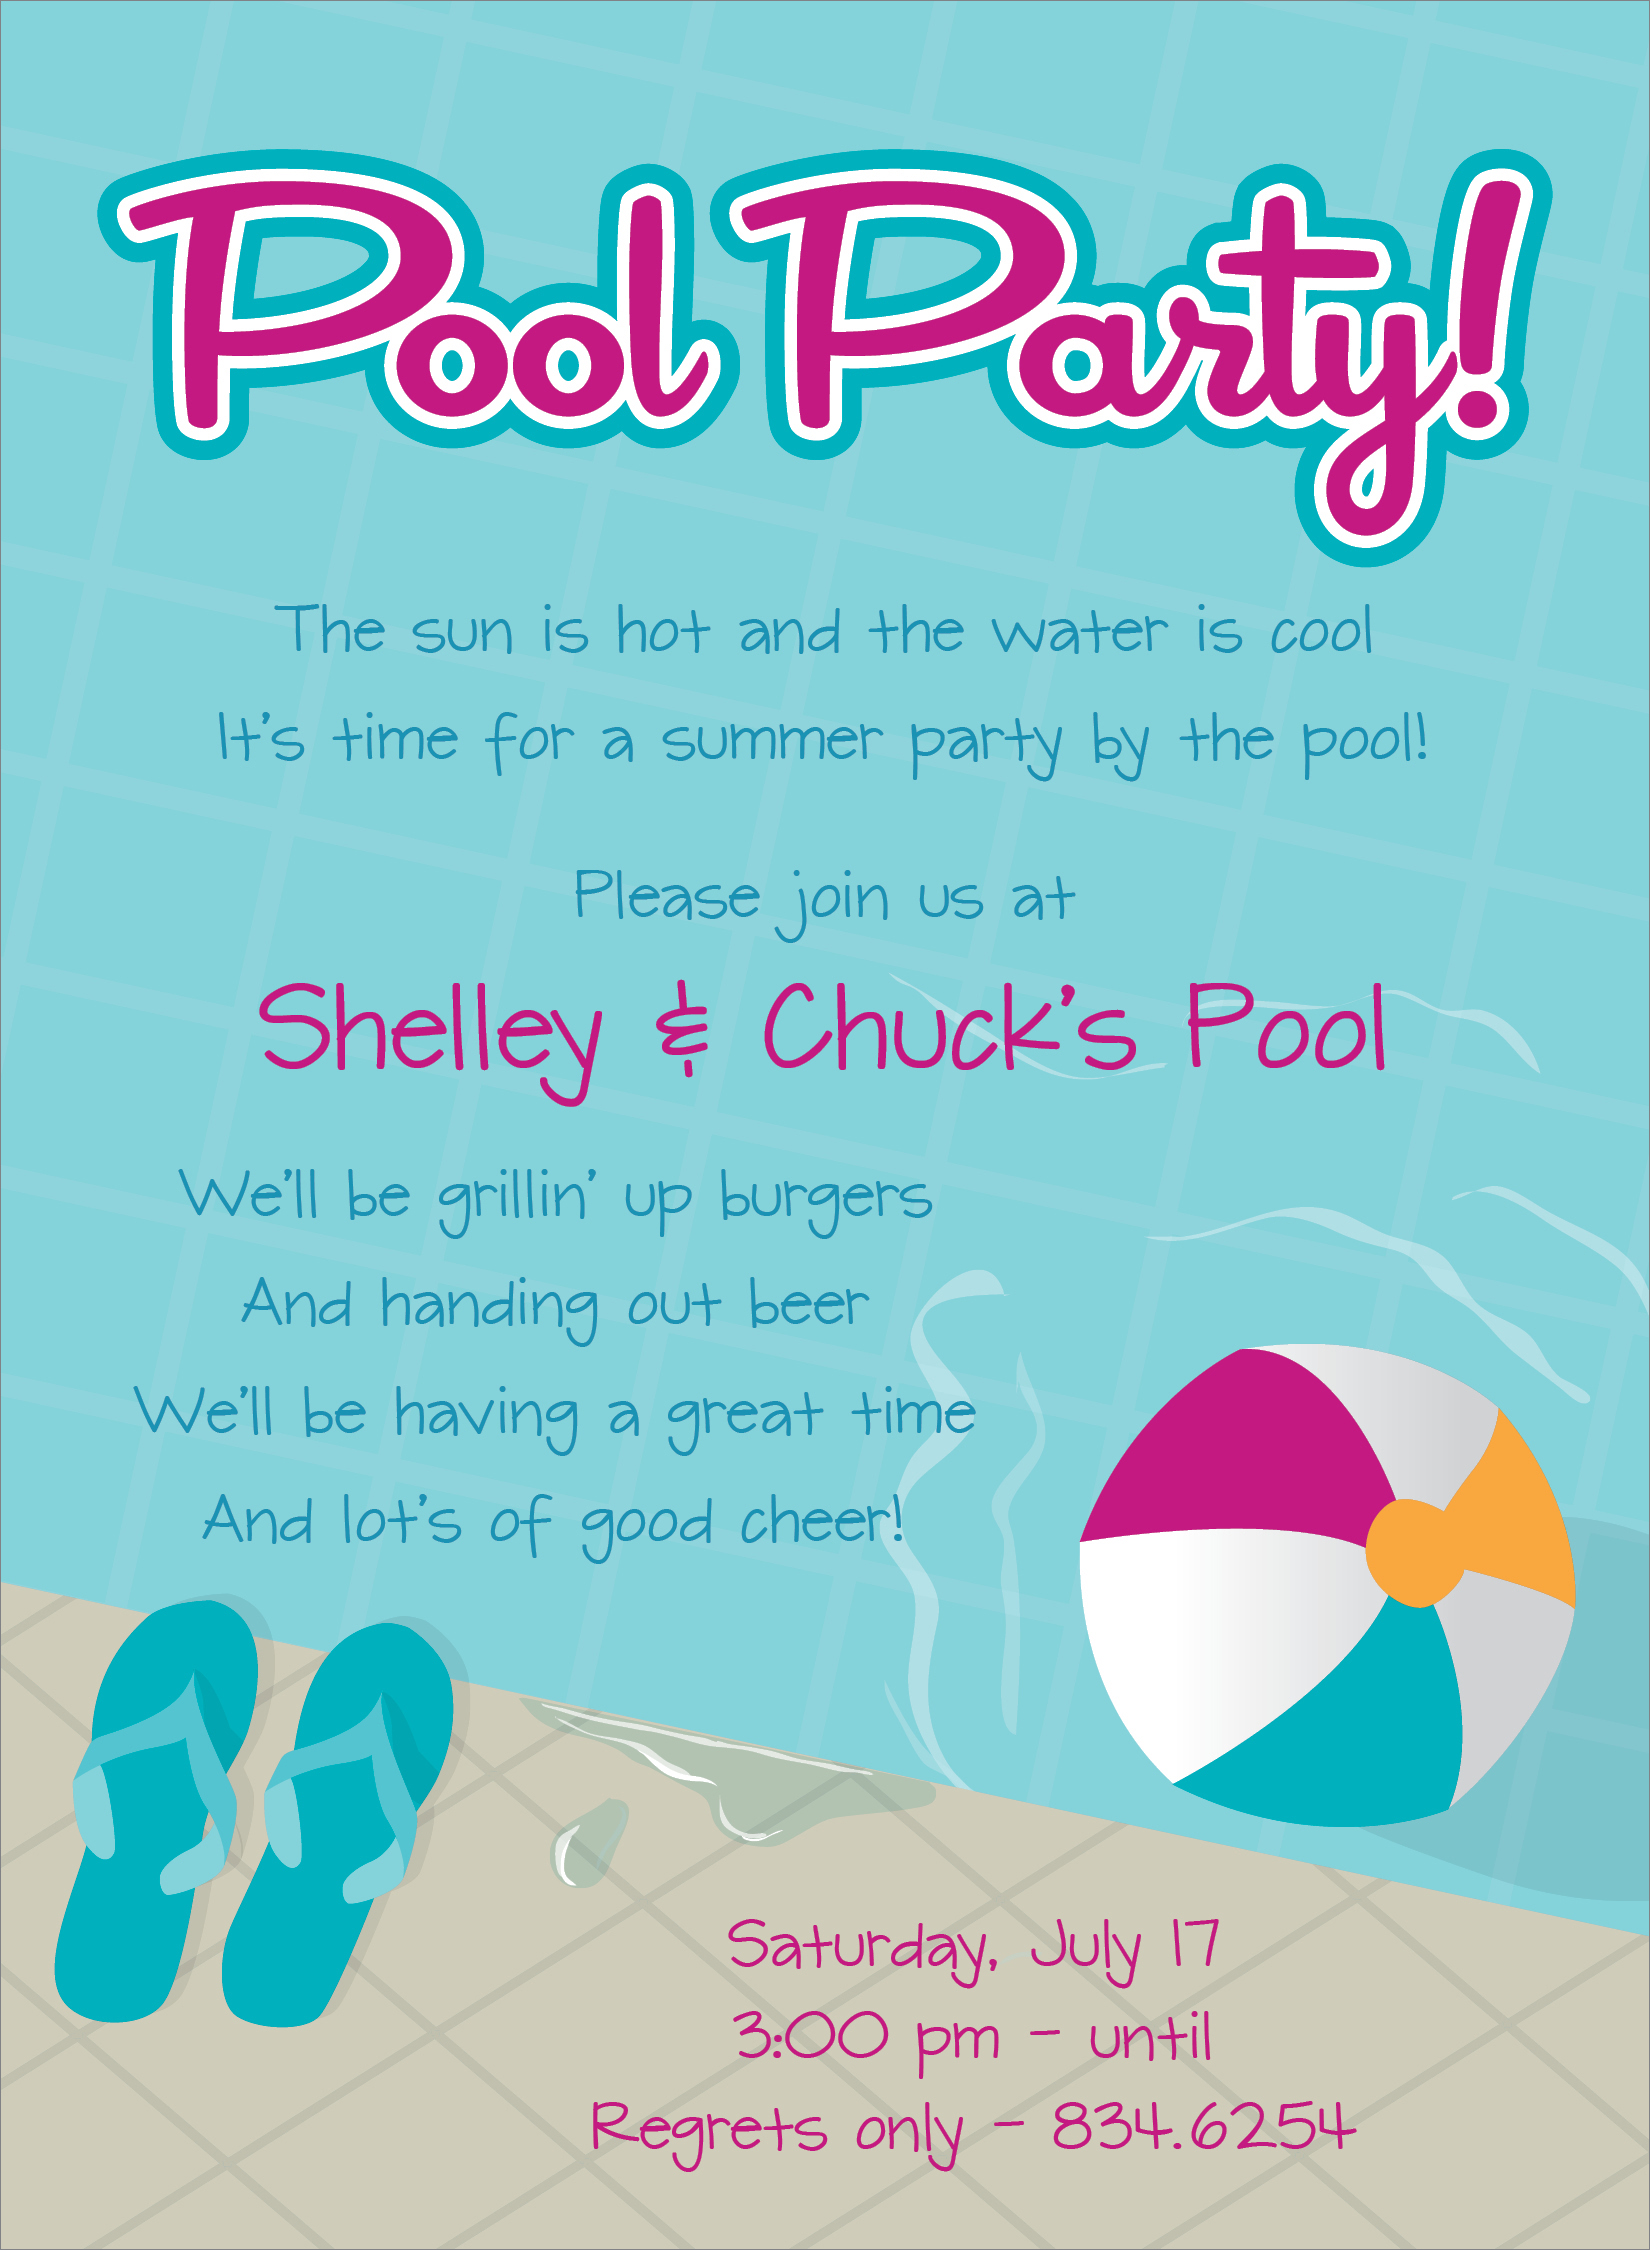 swimming birthday party invitation ideas ; Pool-party-invitation-wording-combined-with-your-creativity-will-make-this-looks-awesome-1